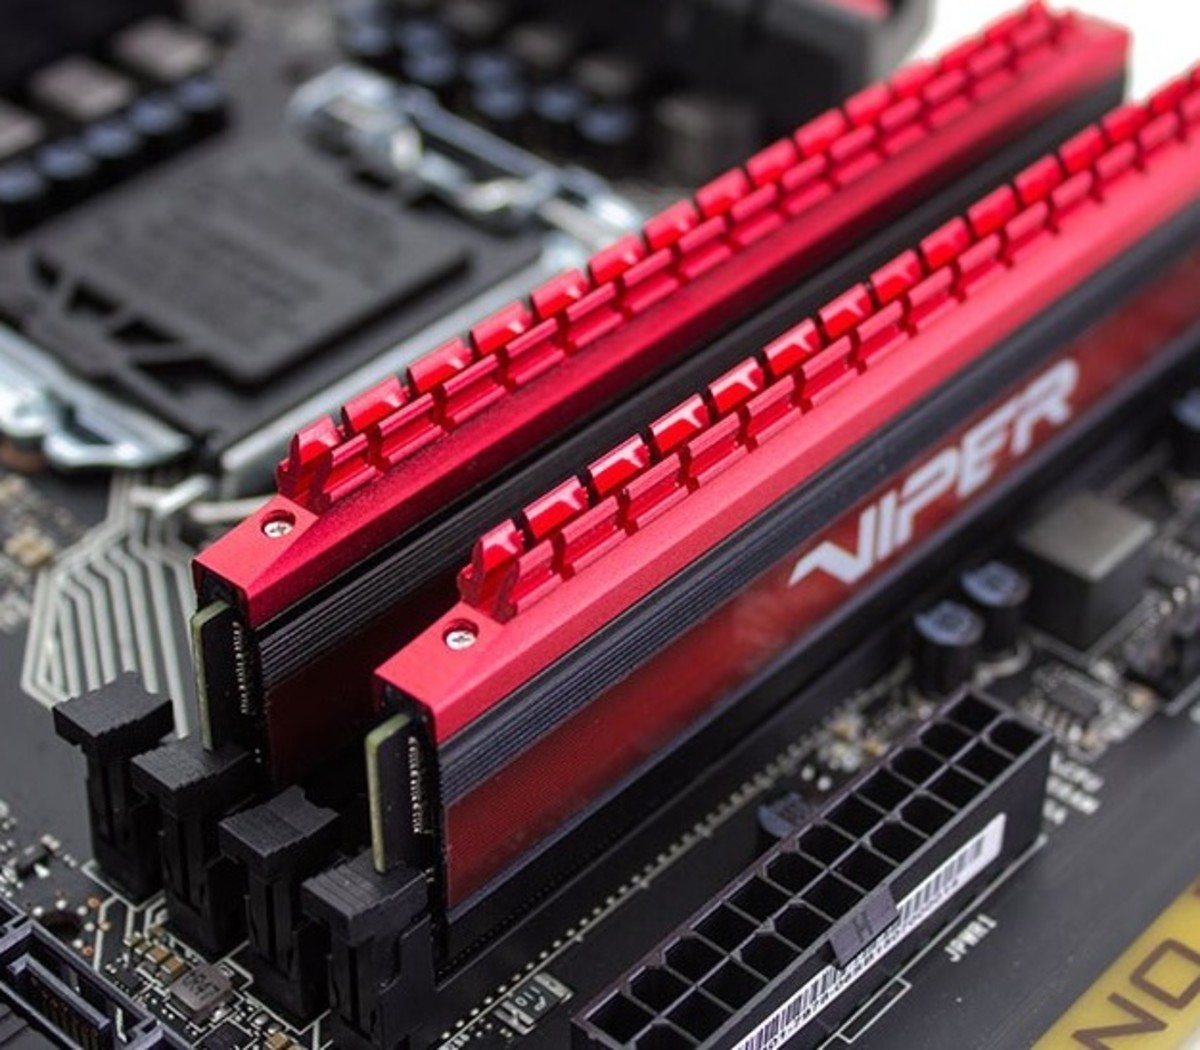 Best Budget Ddr4 Memory Kits For Pc Gaming 2021 Turbofuture Technology